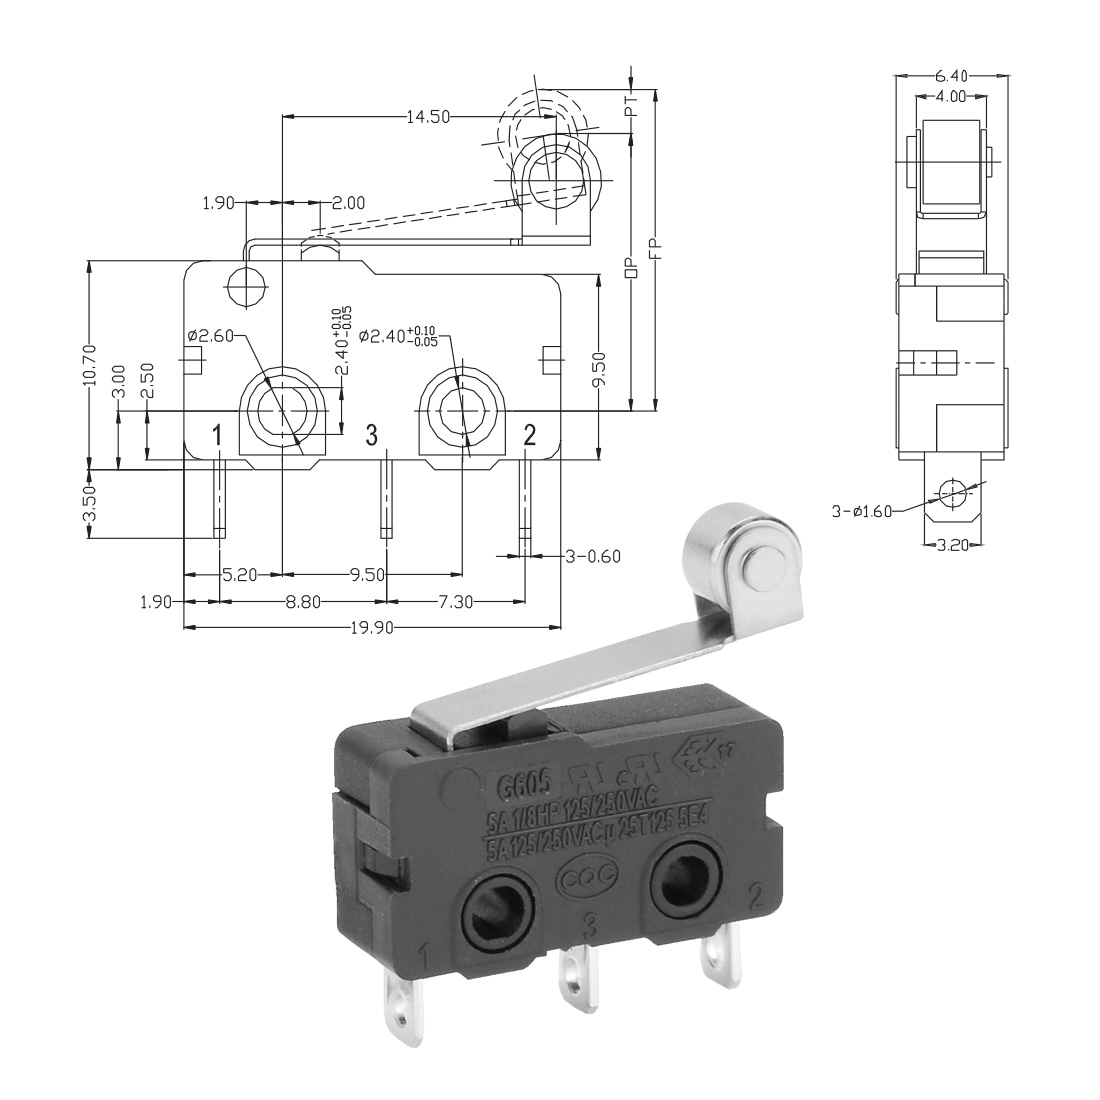 5 Pcs G606-150S06A Micro Limit Switch Roller Arm Subminiature SPDT Snap Action - image 2 of 3